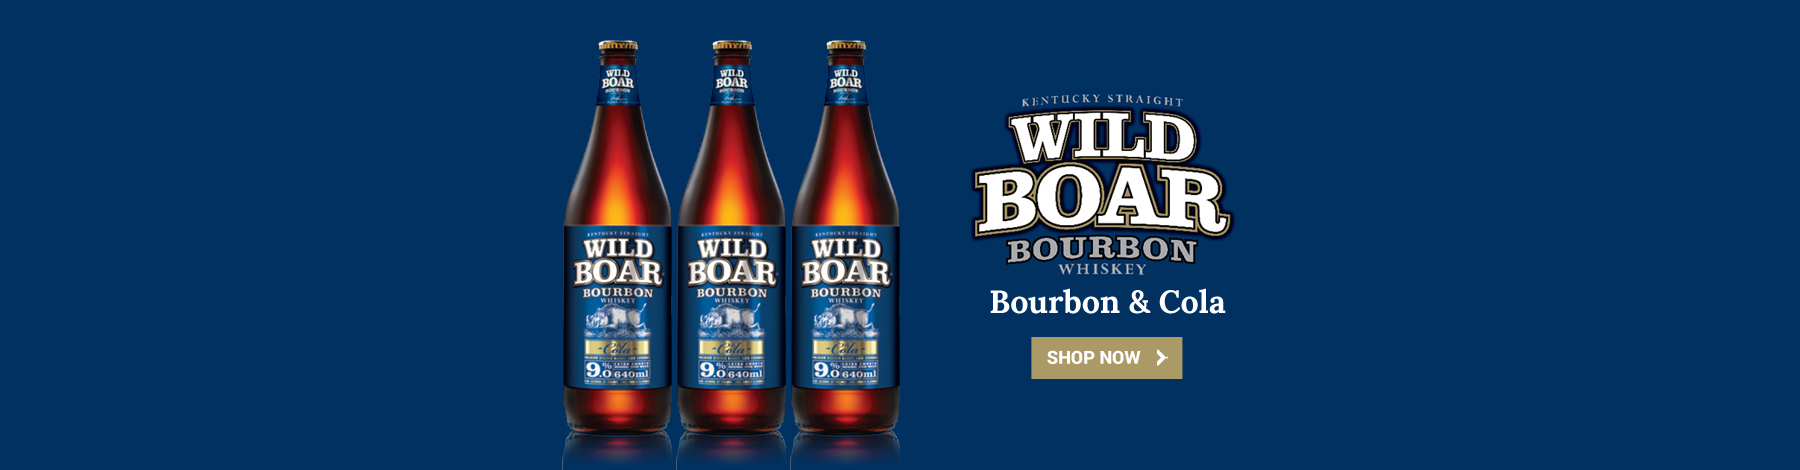 Wild Boar Bourbon & Cola